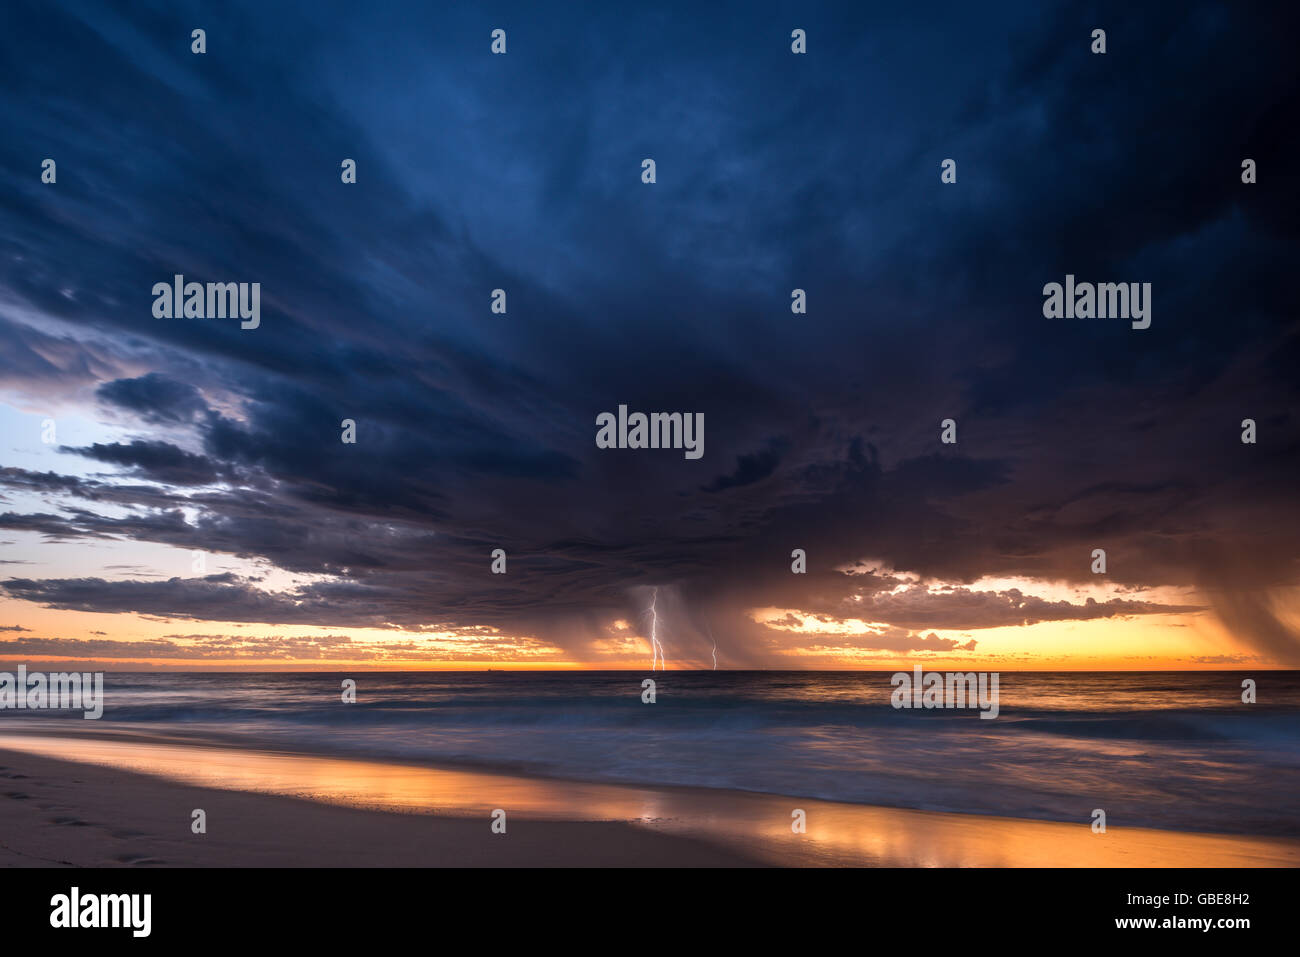 Summer storm from City beach in Perth, Australia Stock Photo